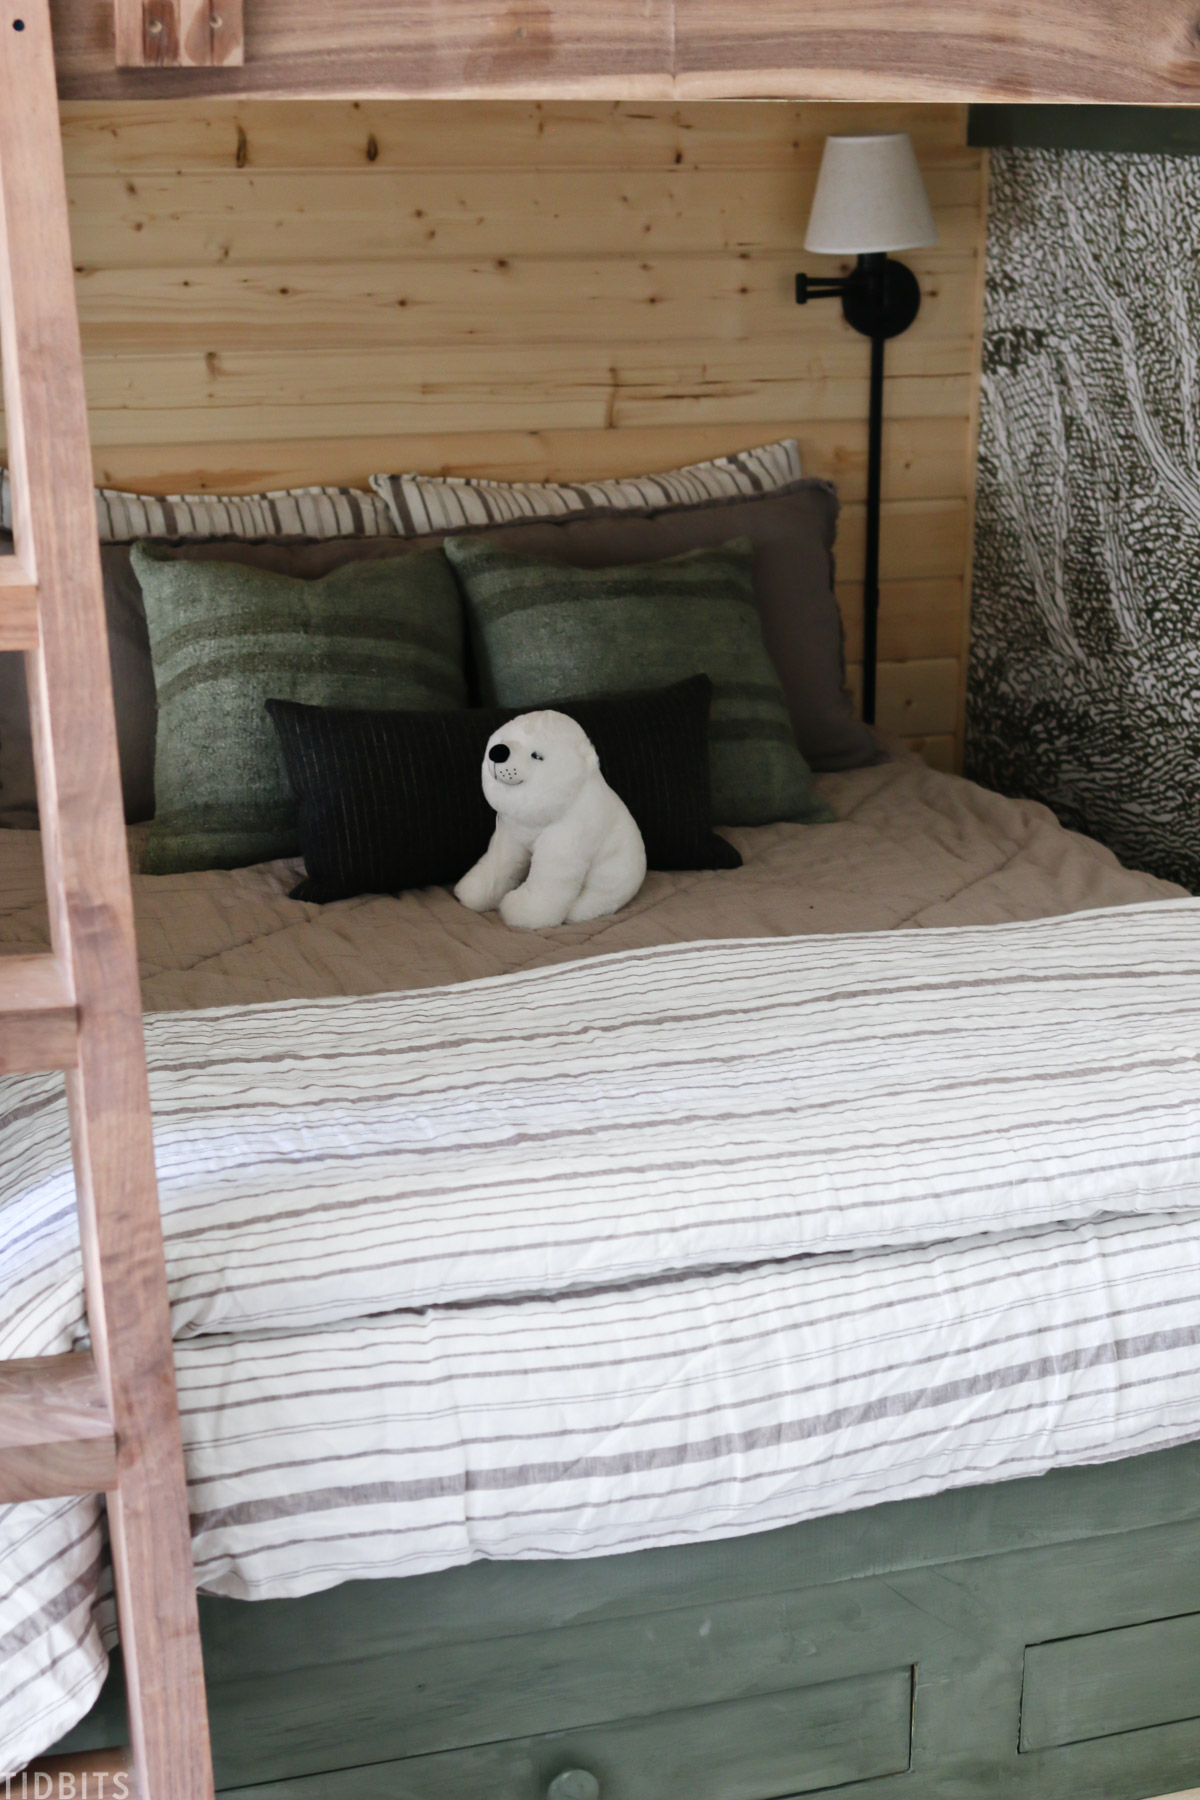 kids bed layered with linens, throw pillows, and a stuffed polar bear